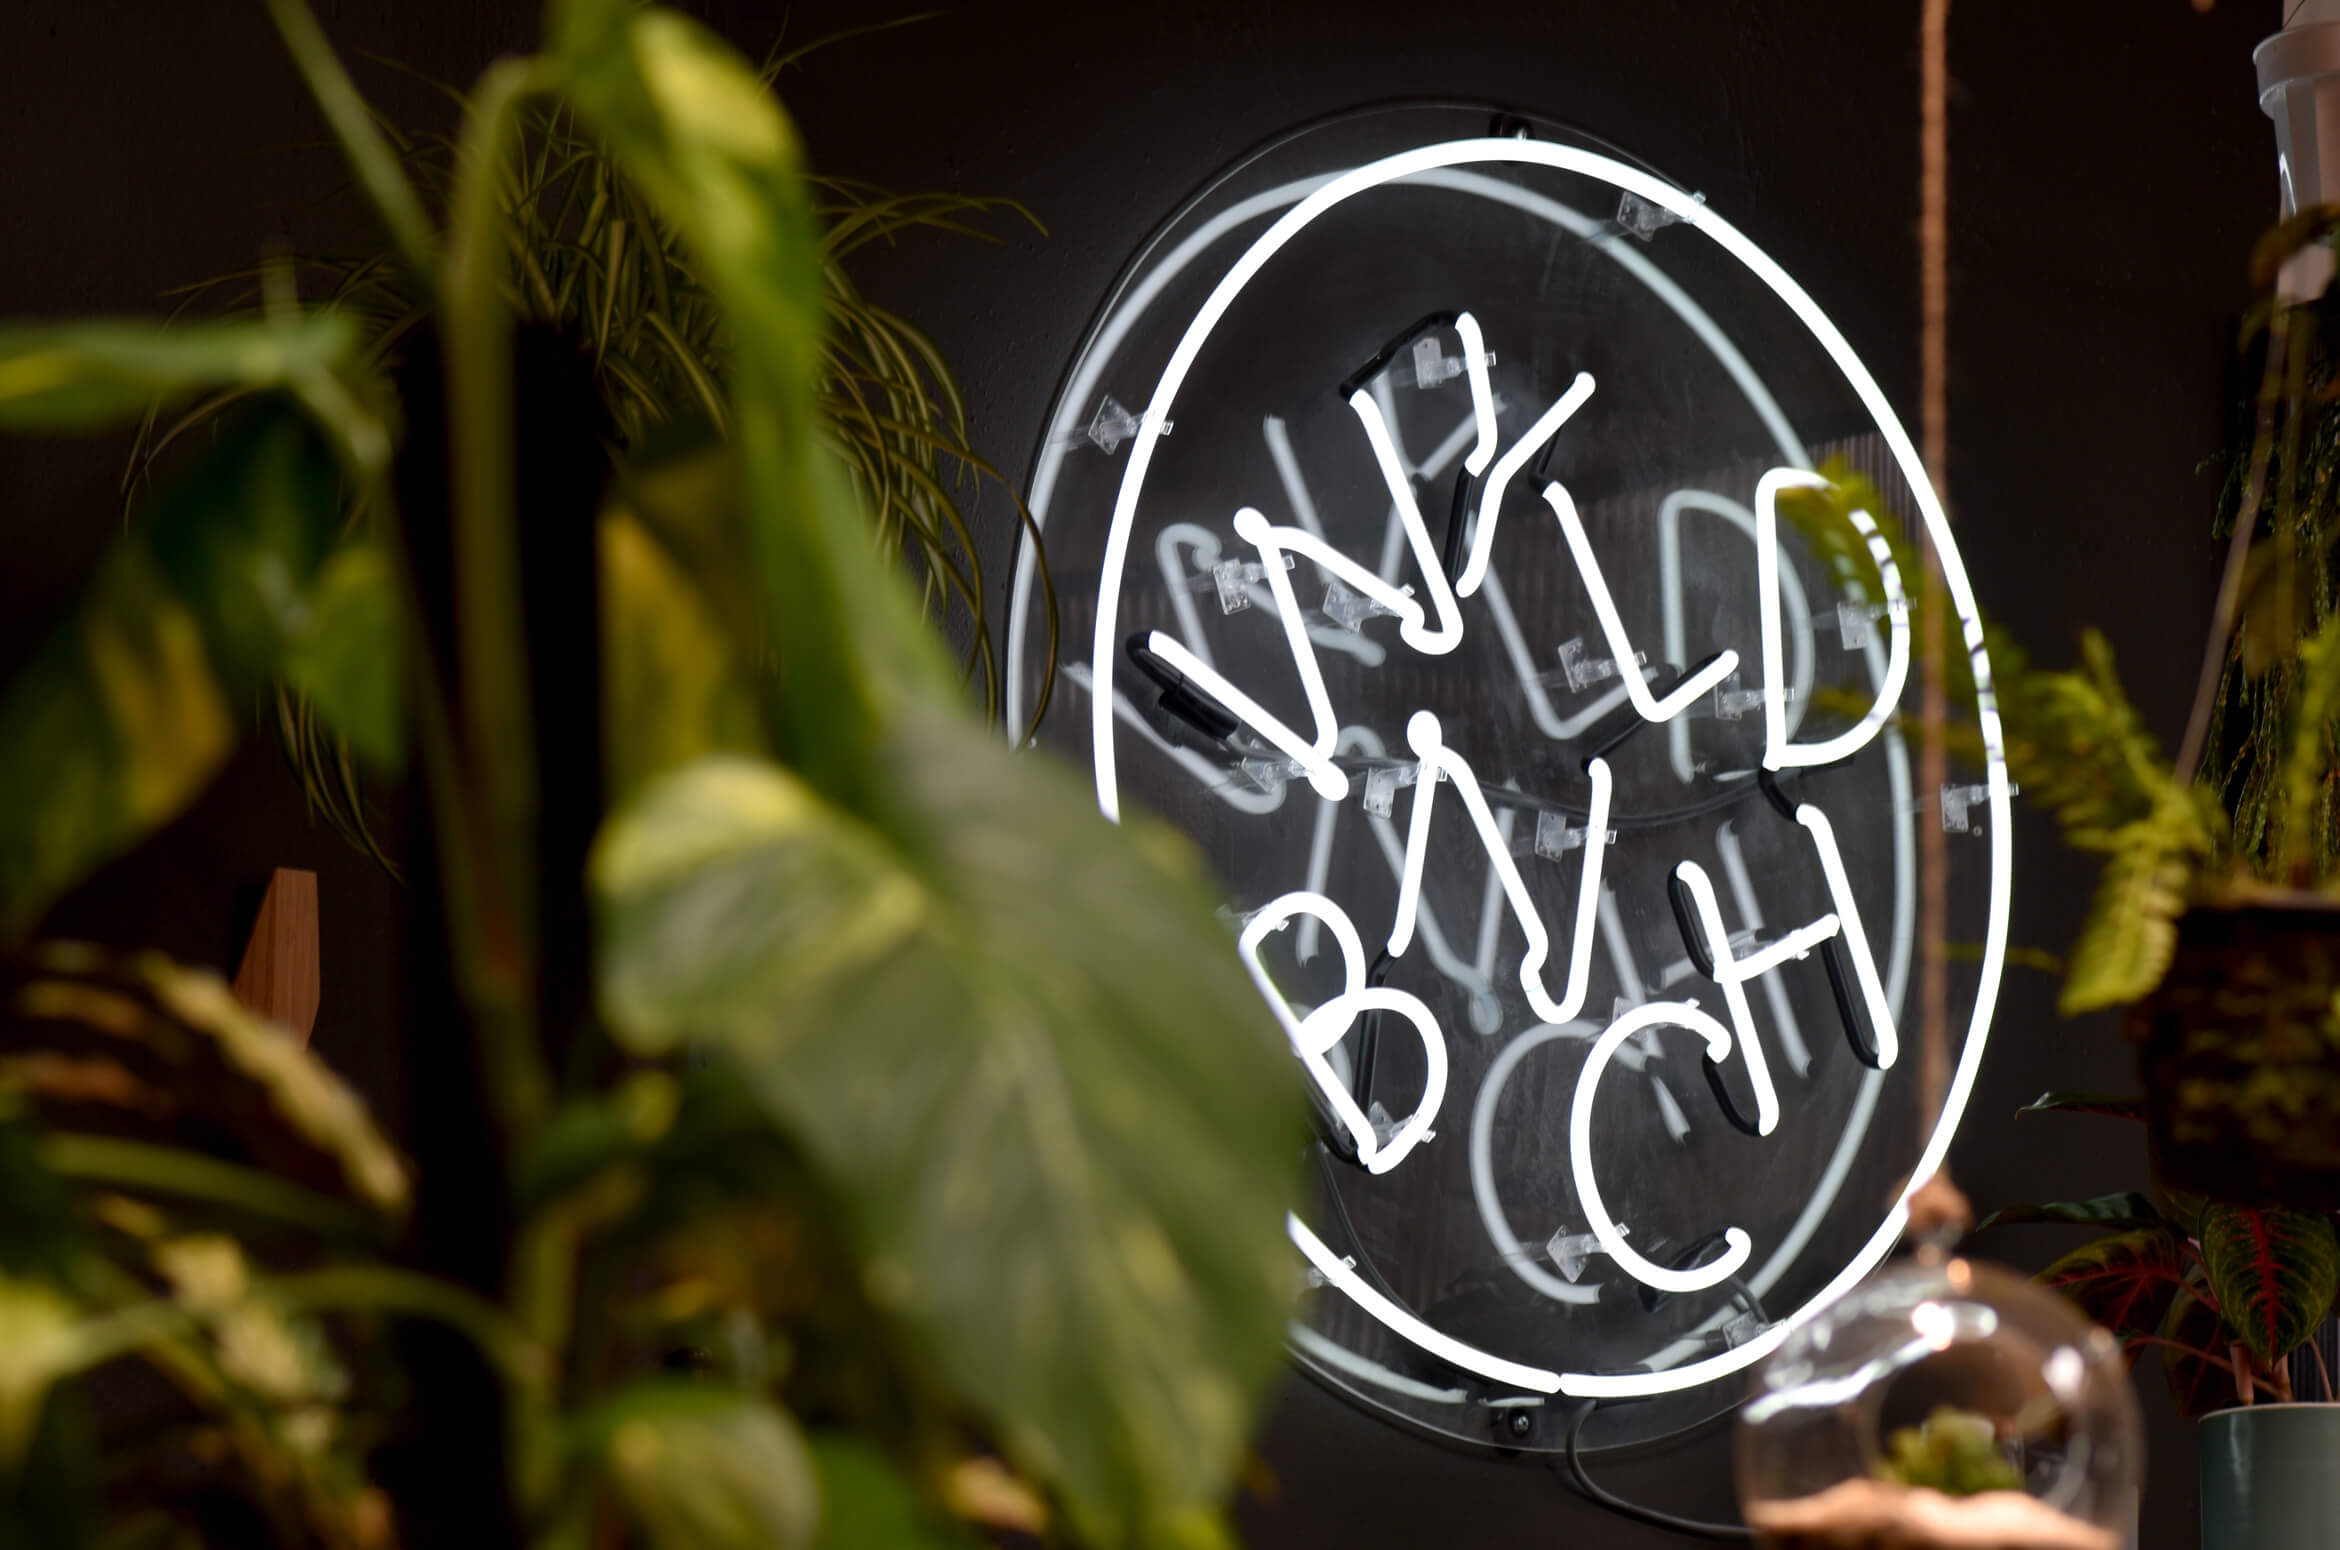 Neon signage at Wyldbnch pants in Los Angeles.